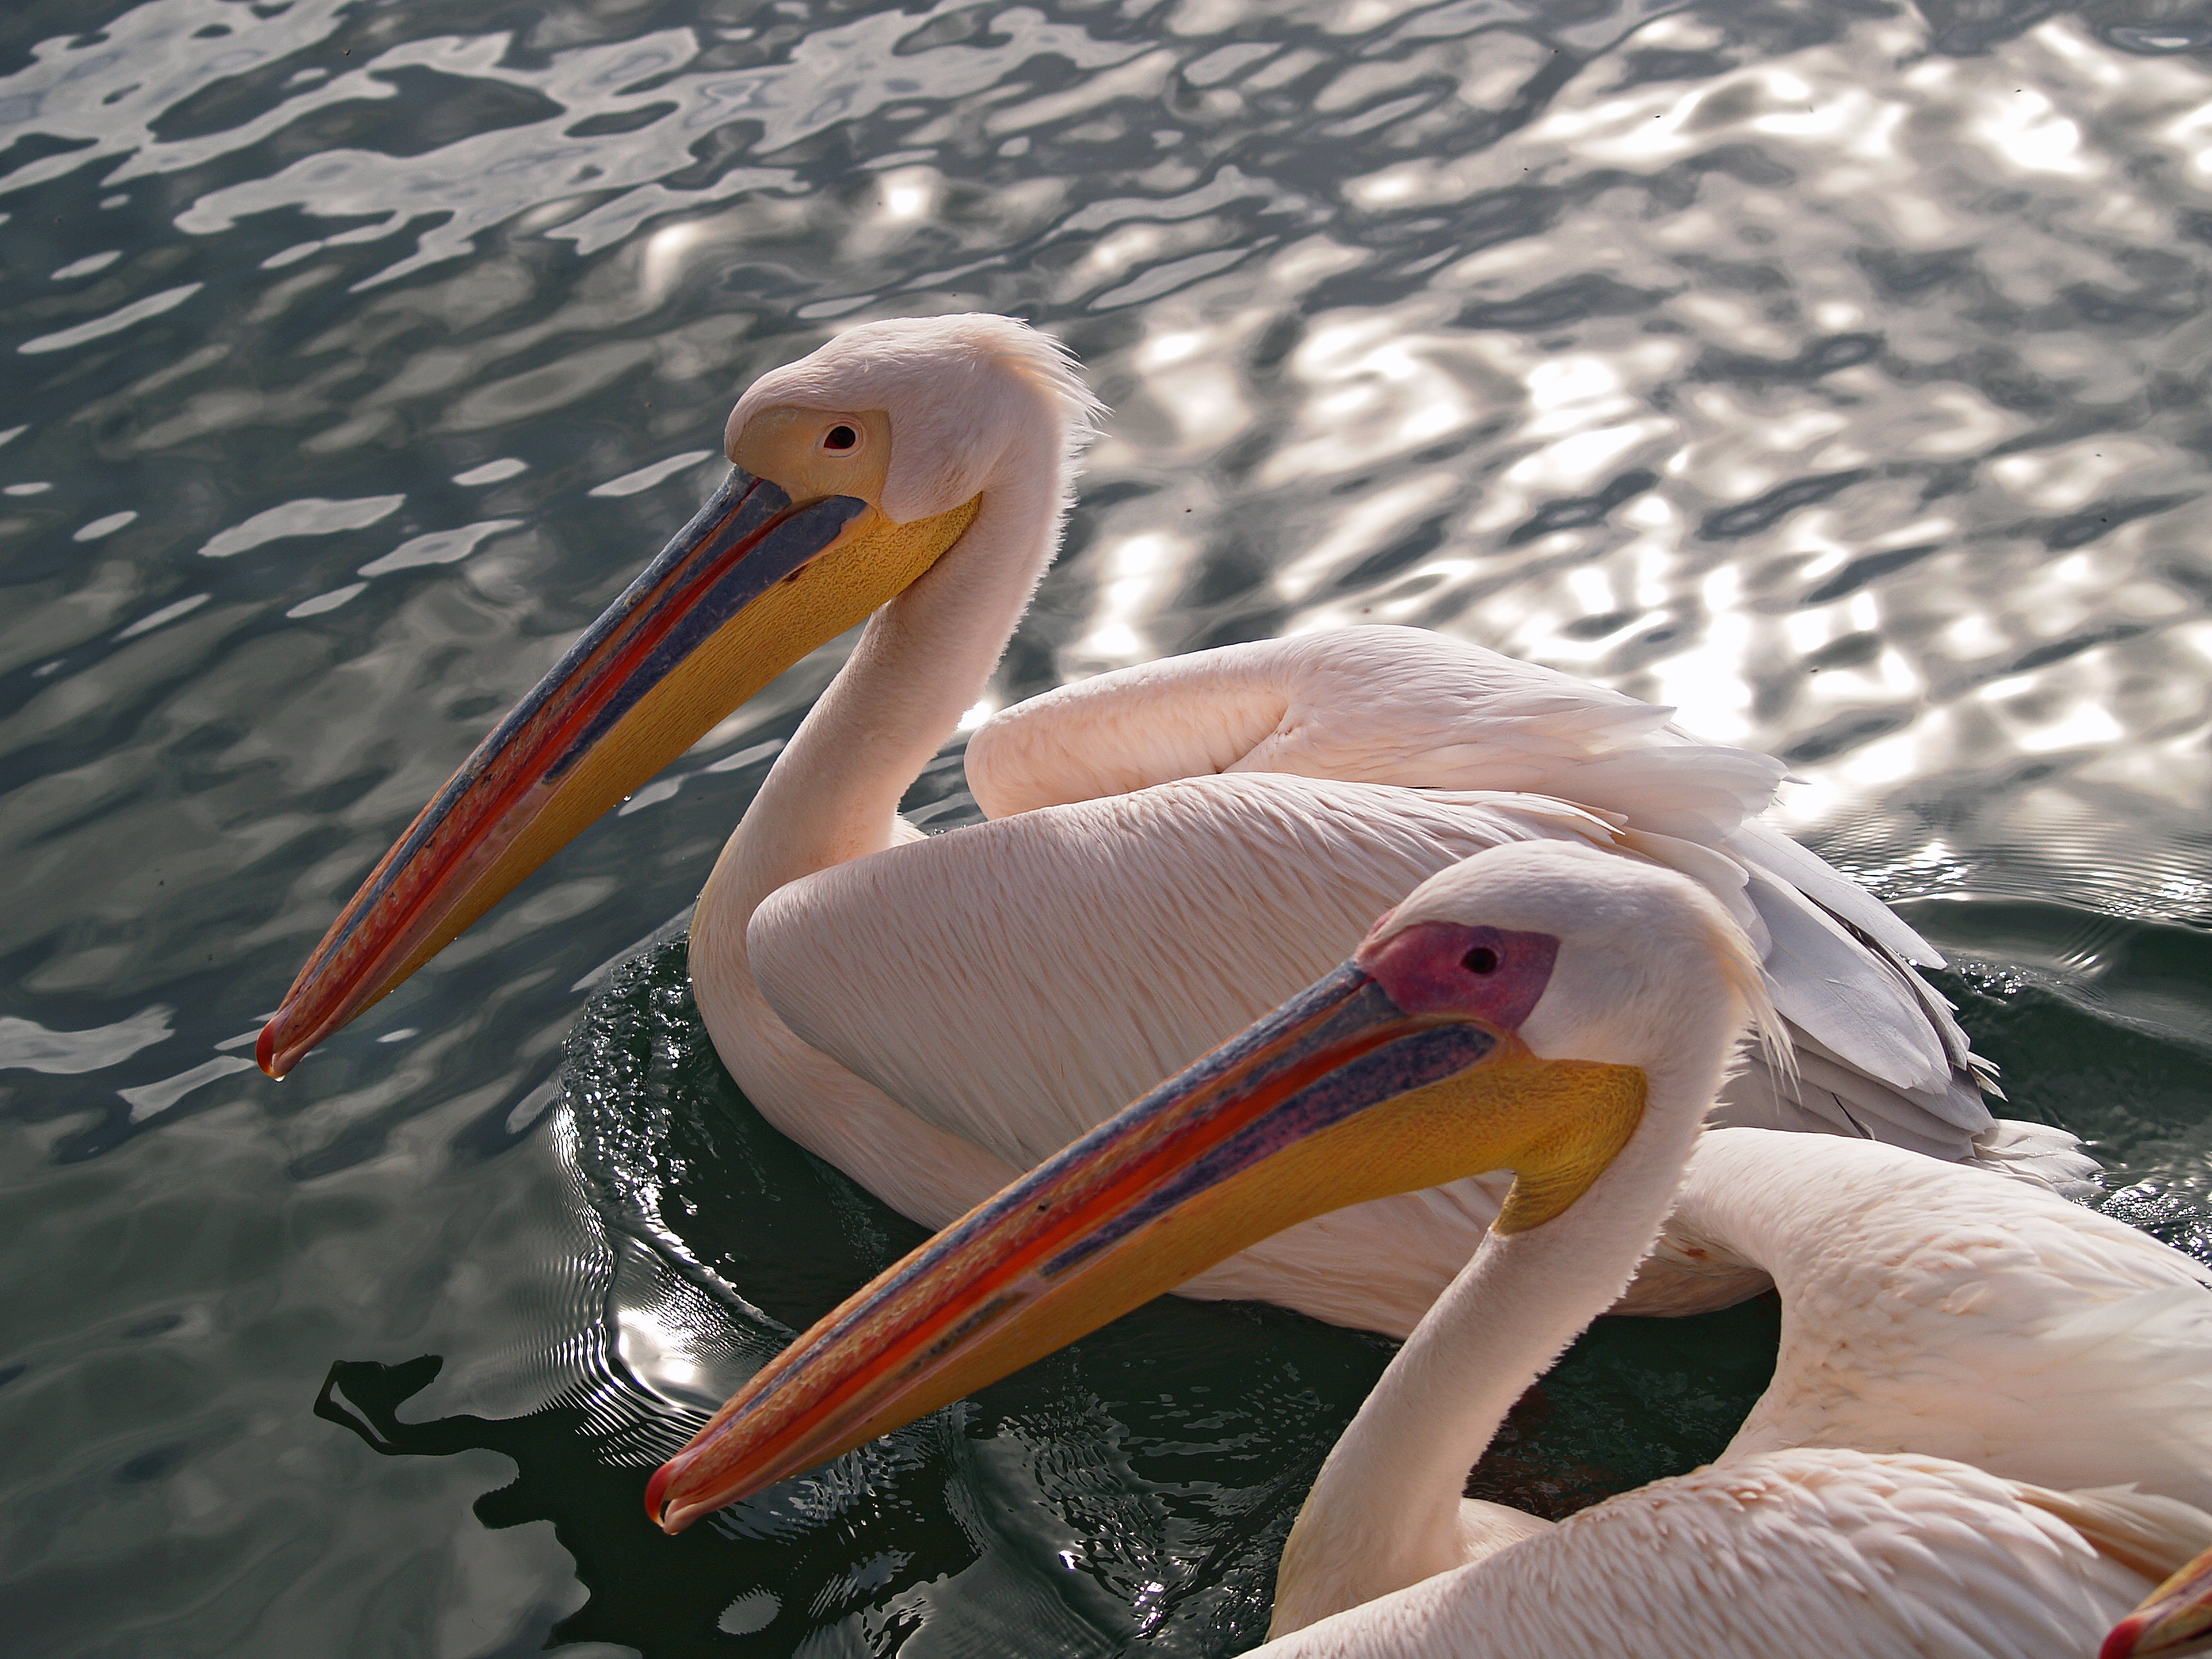 A pair of Great White Pelican (also known as the Eastern White Pelican or White Pelican) in Walvis Bay, Namibia. The male (front) has pinkish skin on its face and the female has orangish skin on its face. Photo taken by Rui Ornelas on July 15, 2006.